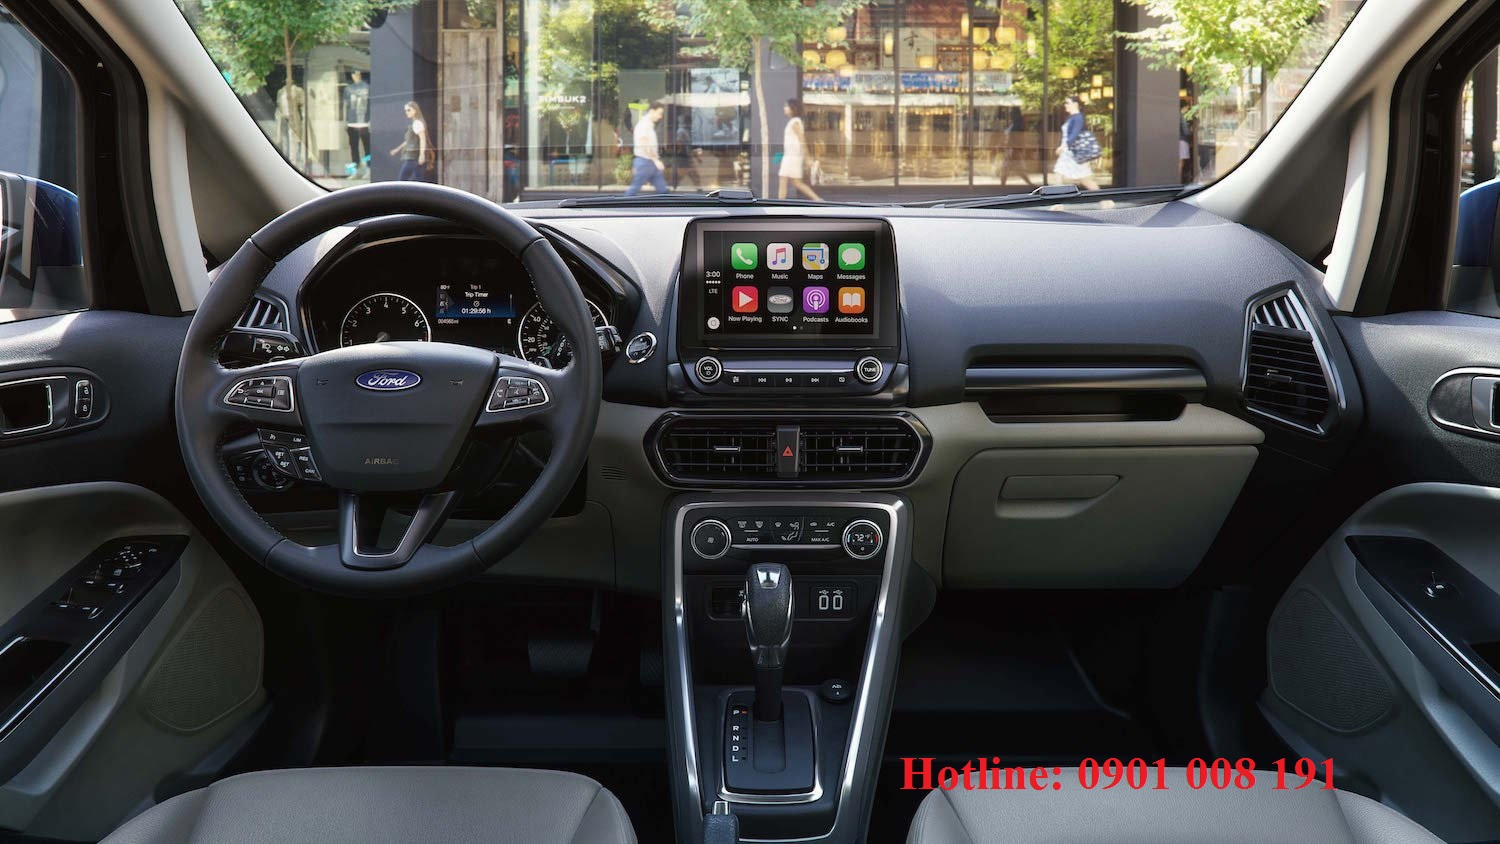 2018-ford-ecosport-interior-photos-1500x844_-_Copy.jpg